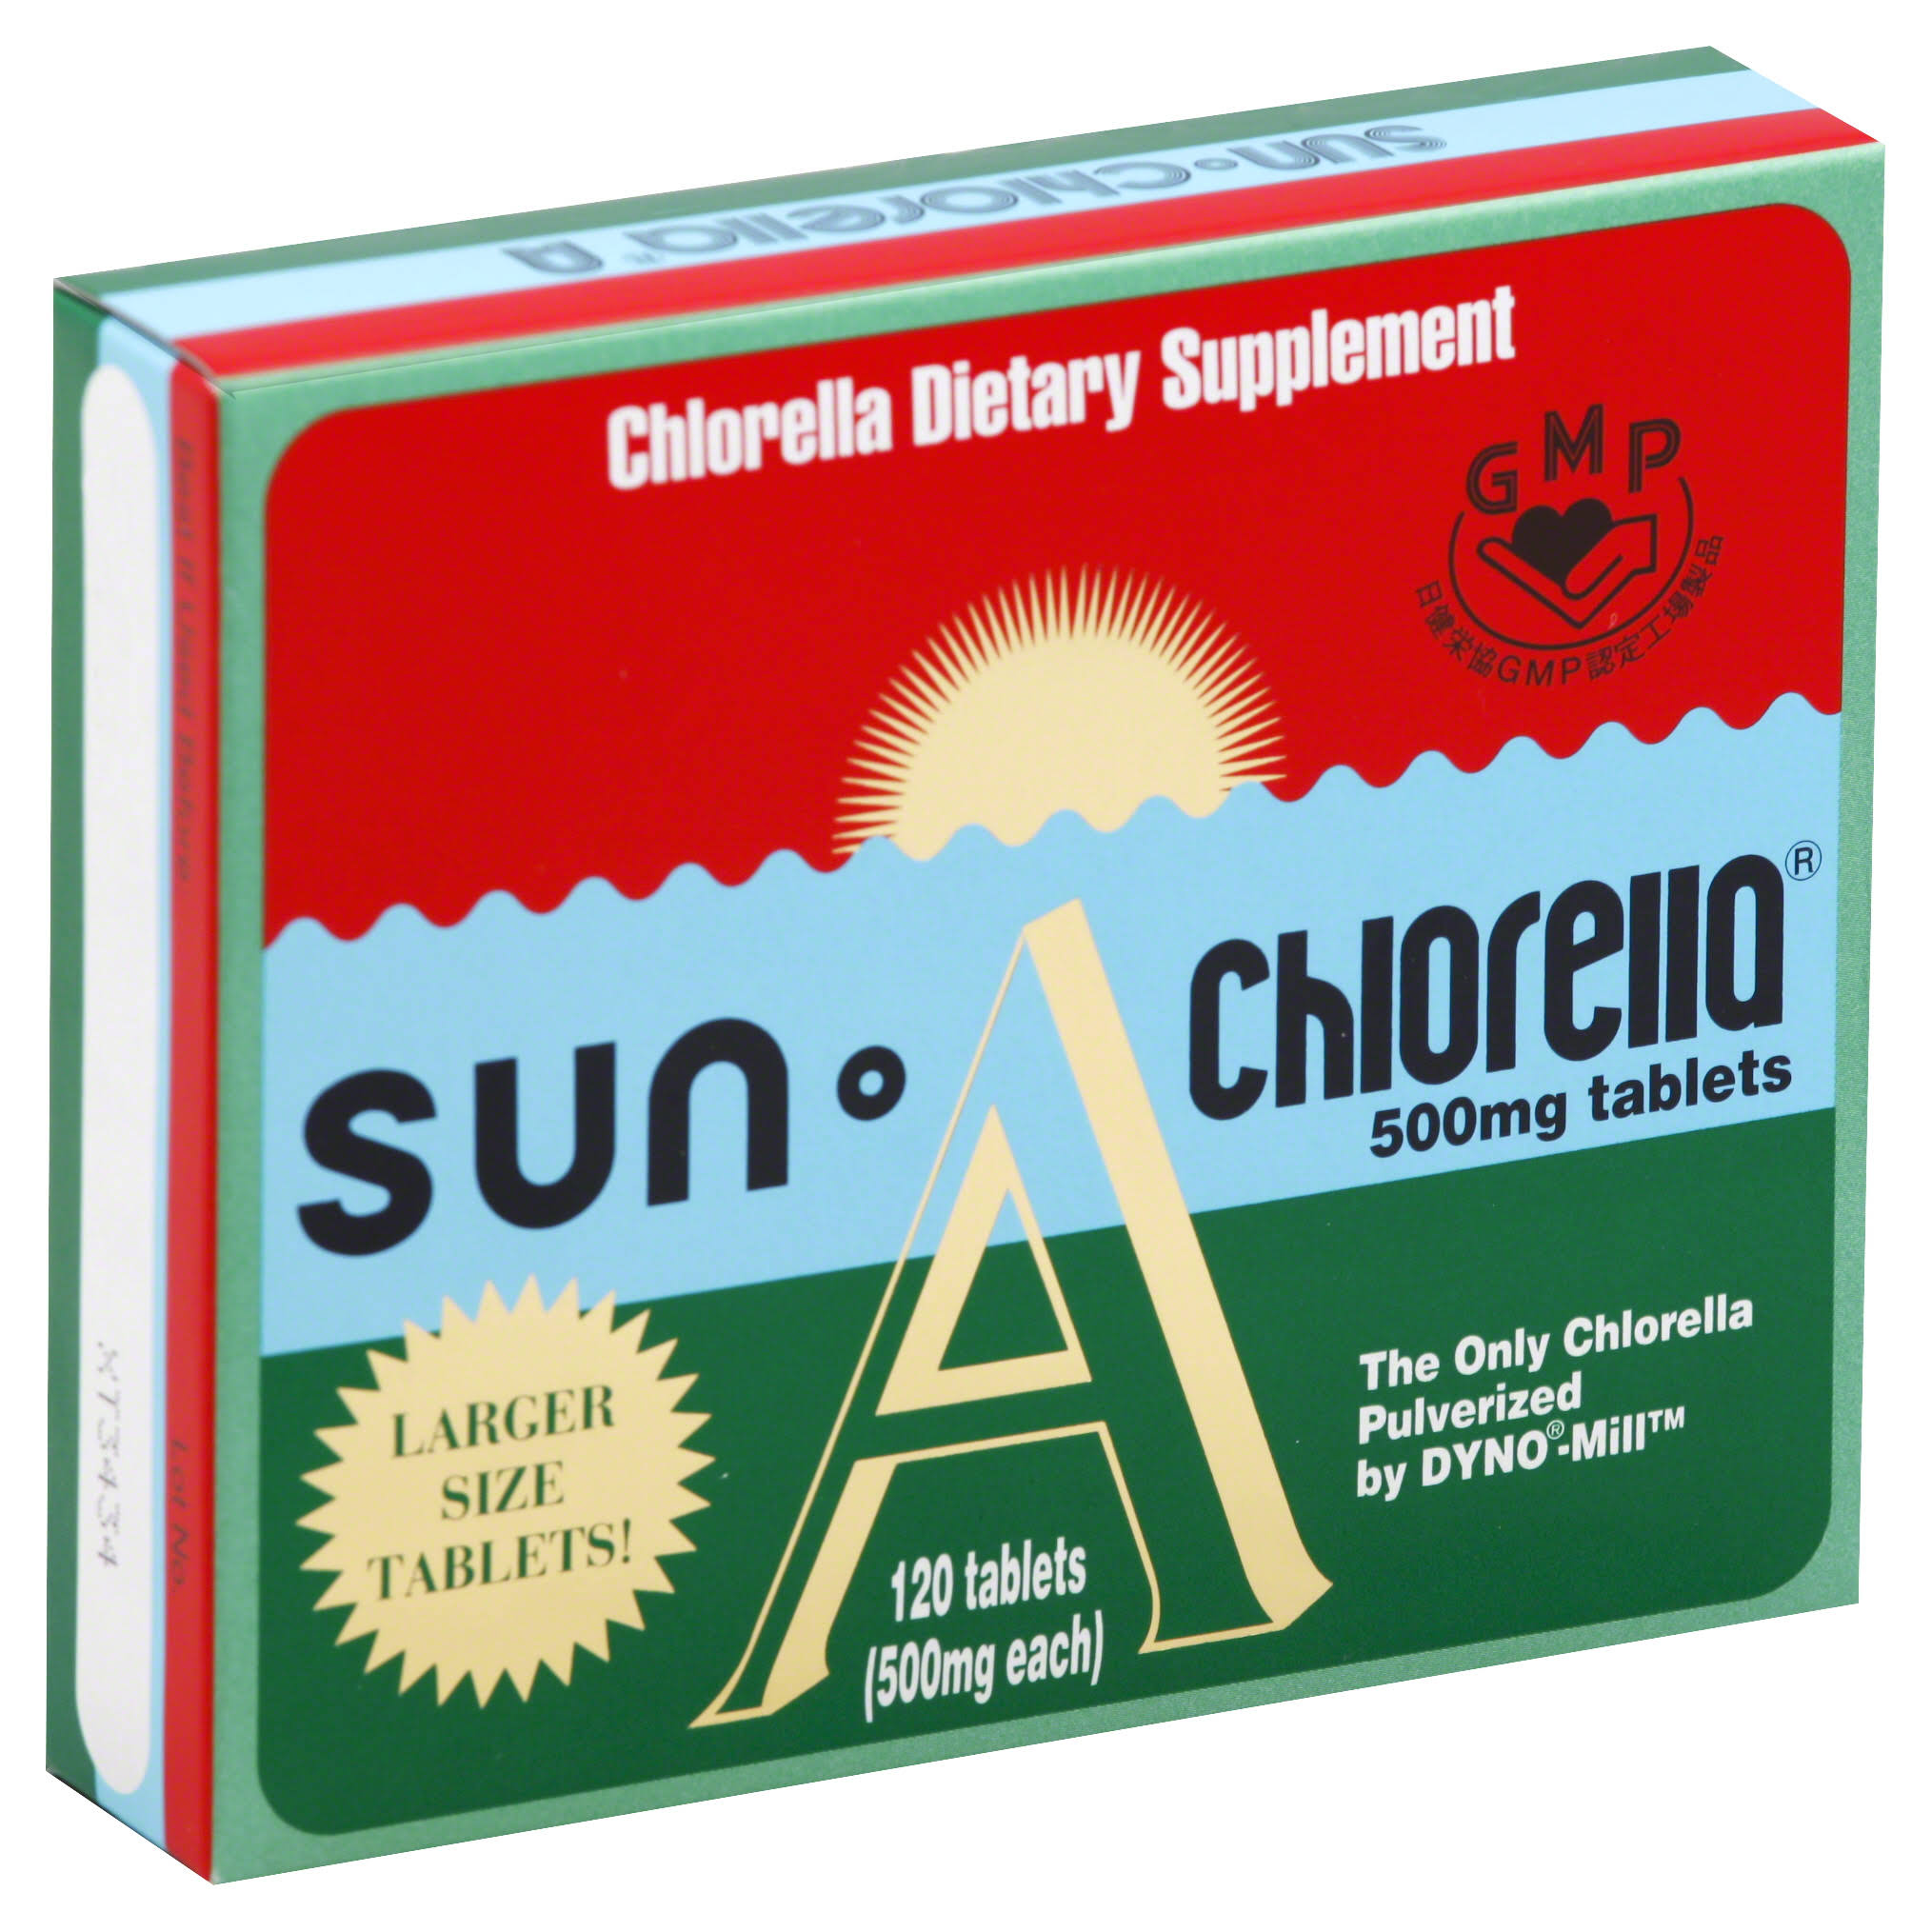 Sun Chlorella 500 Mg Dietary Supplement - 120 Tablets